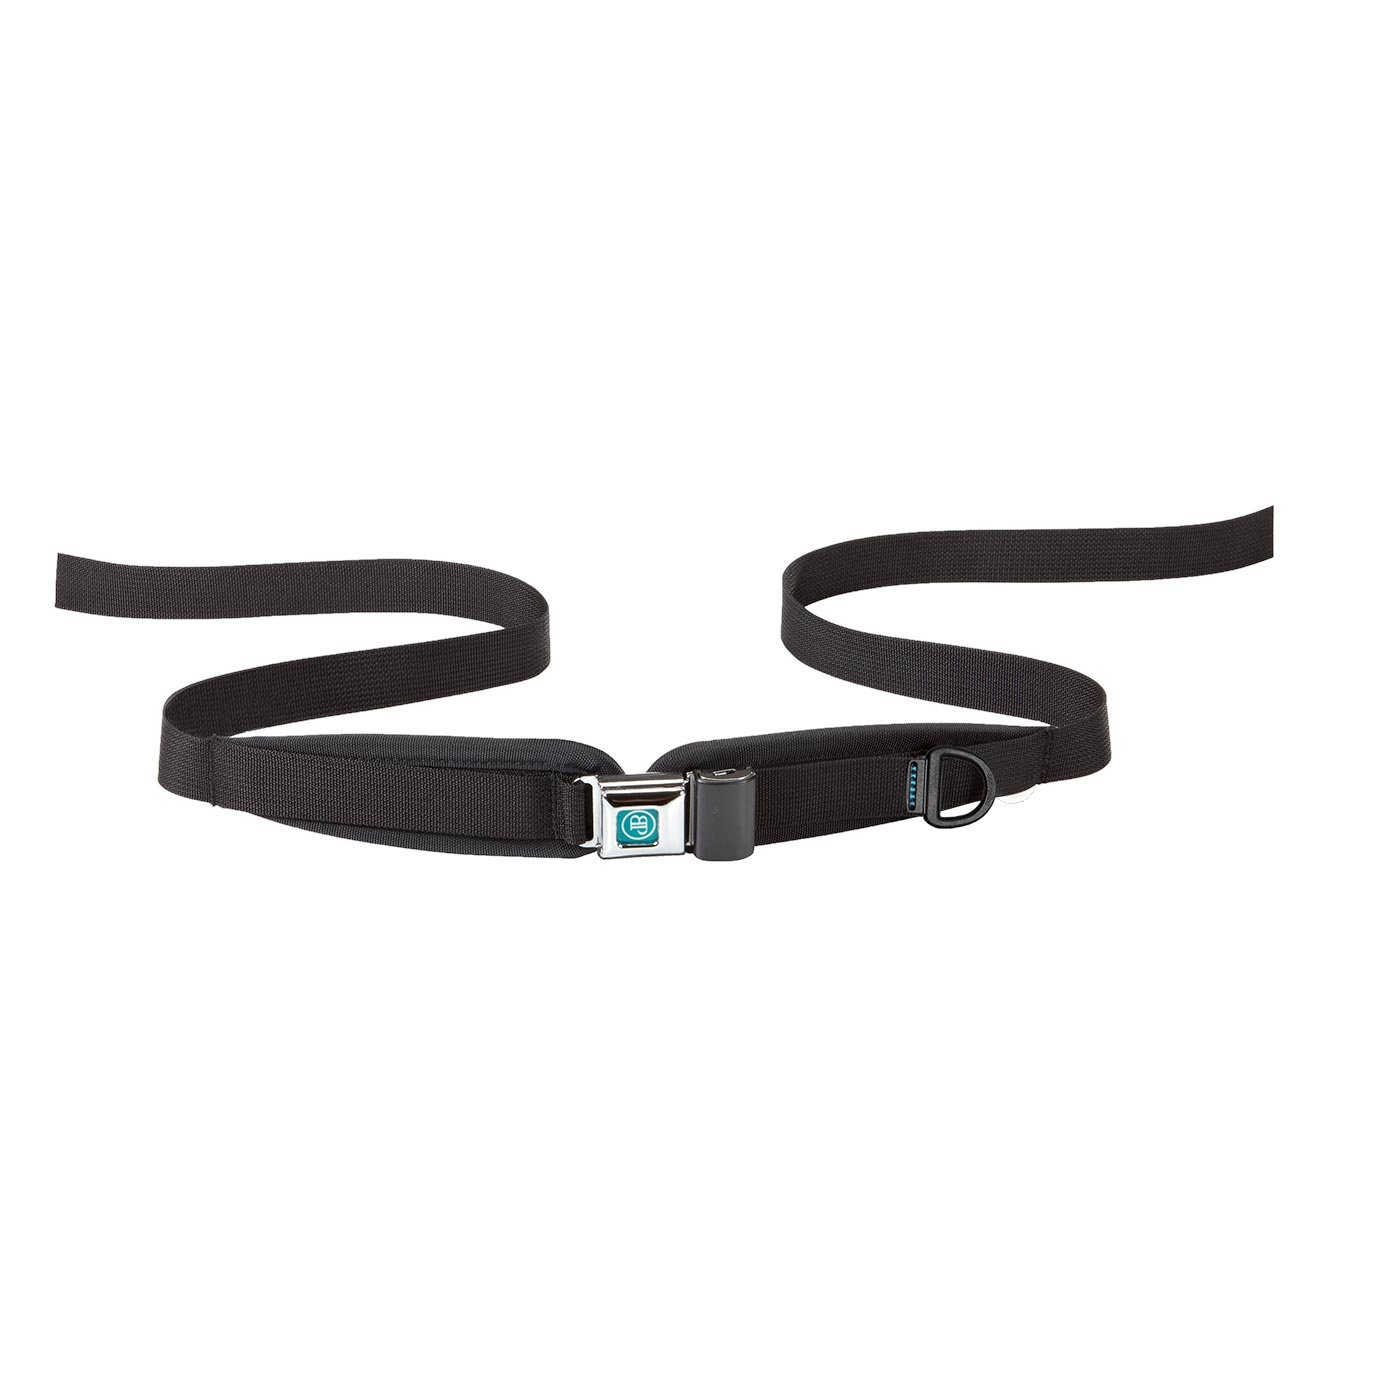 Bodypoint center-pull two point padded hip belt with metal push button buckle